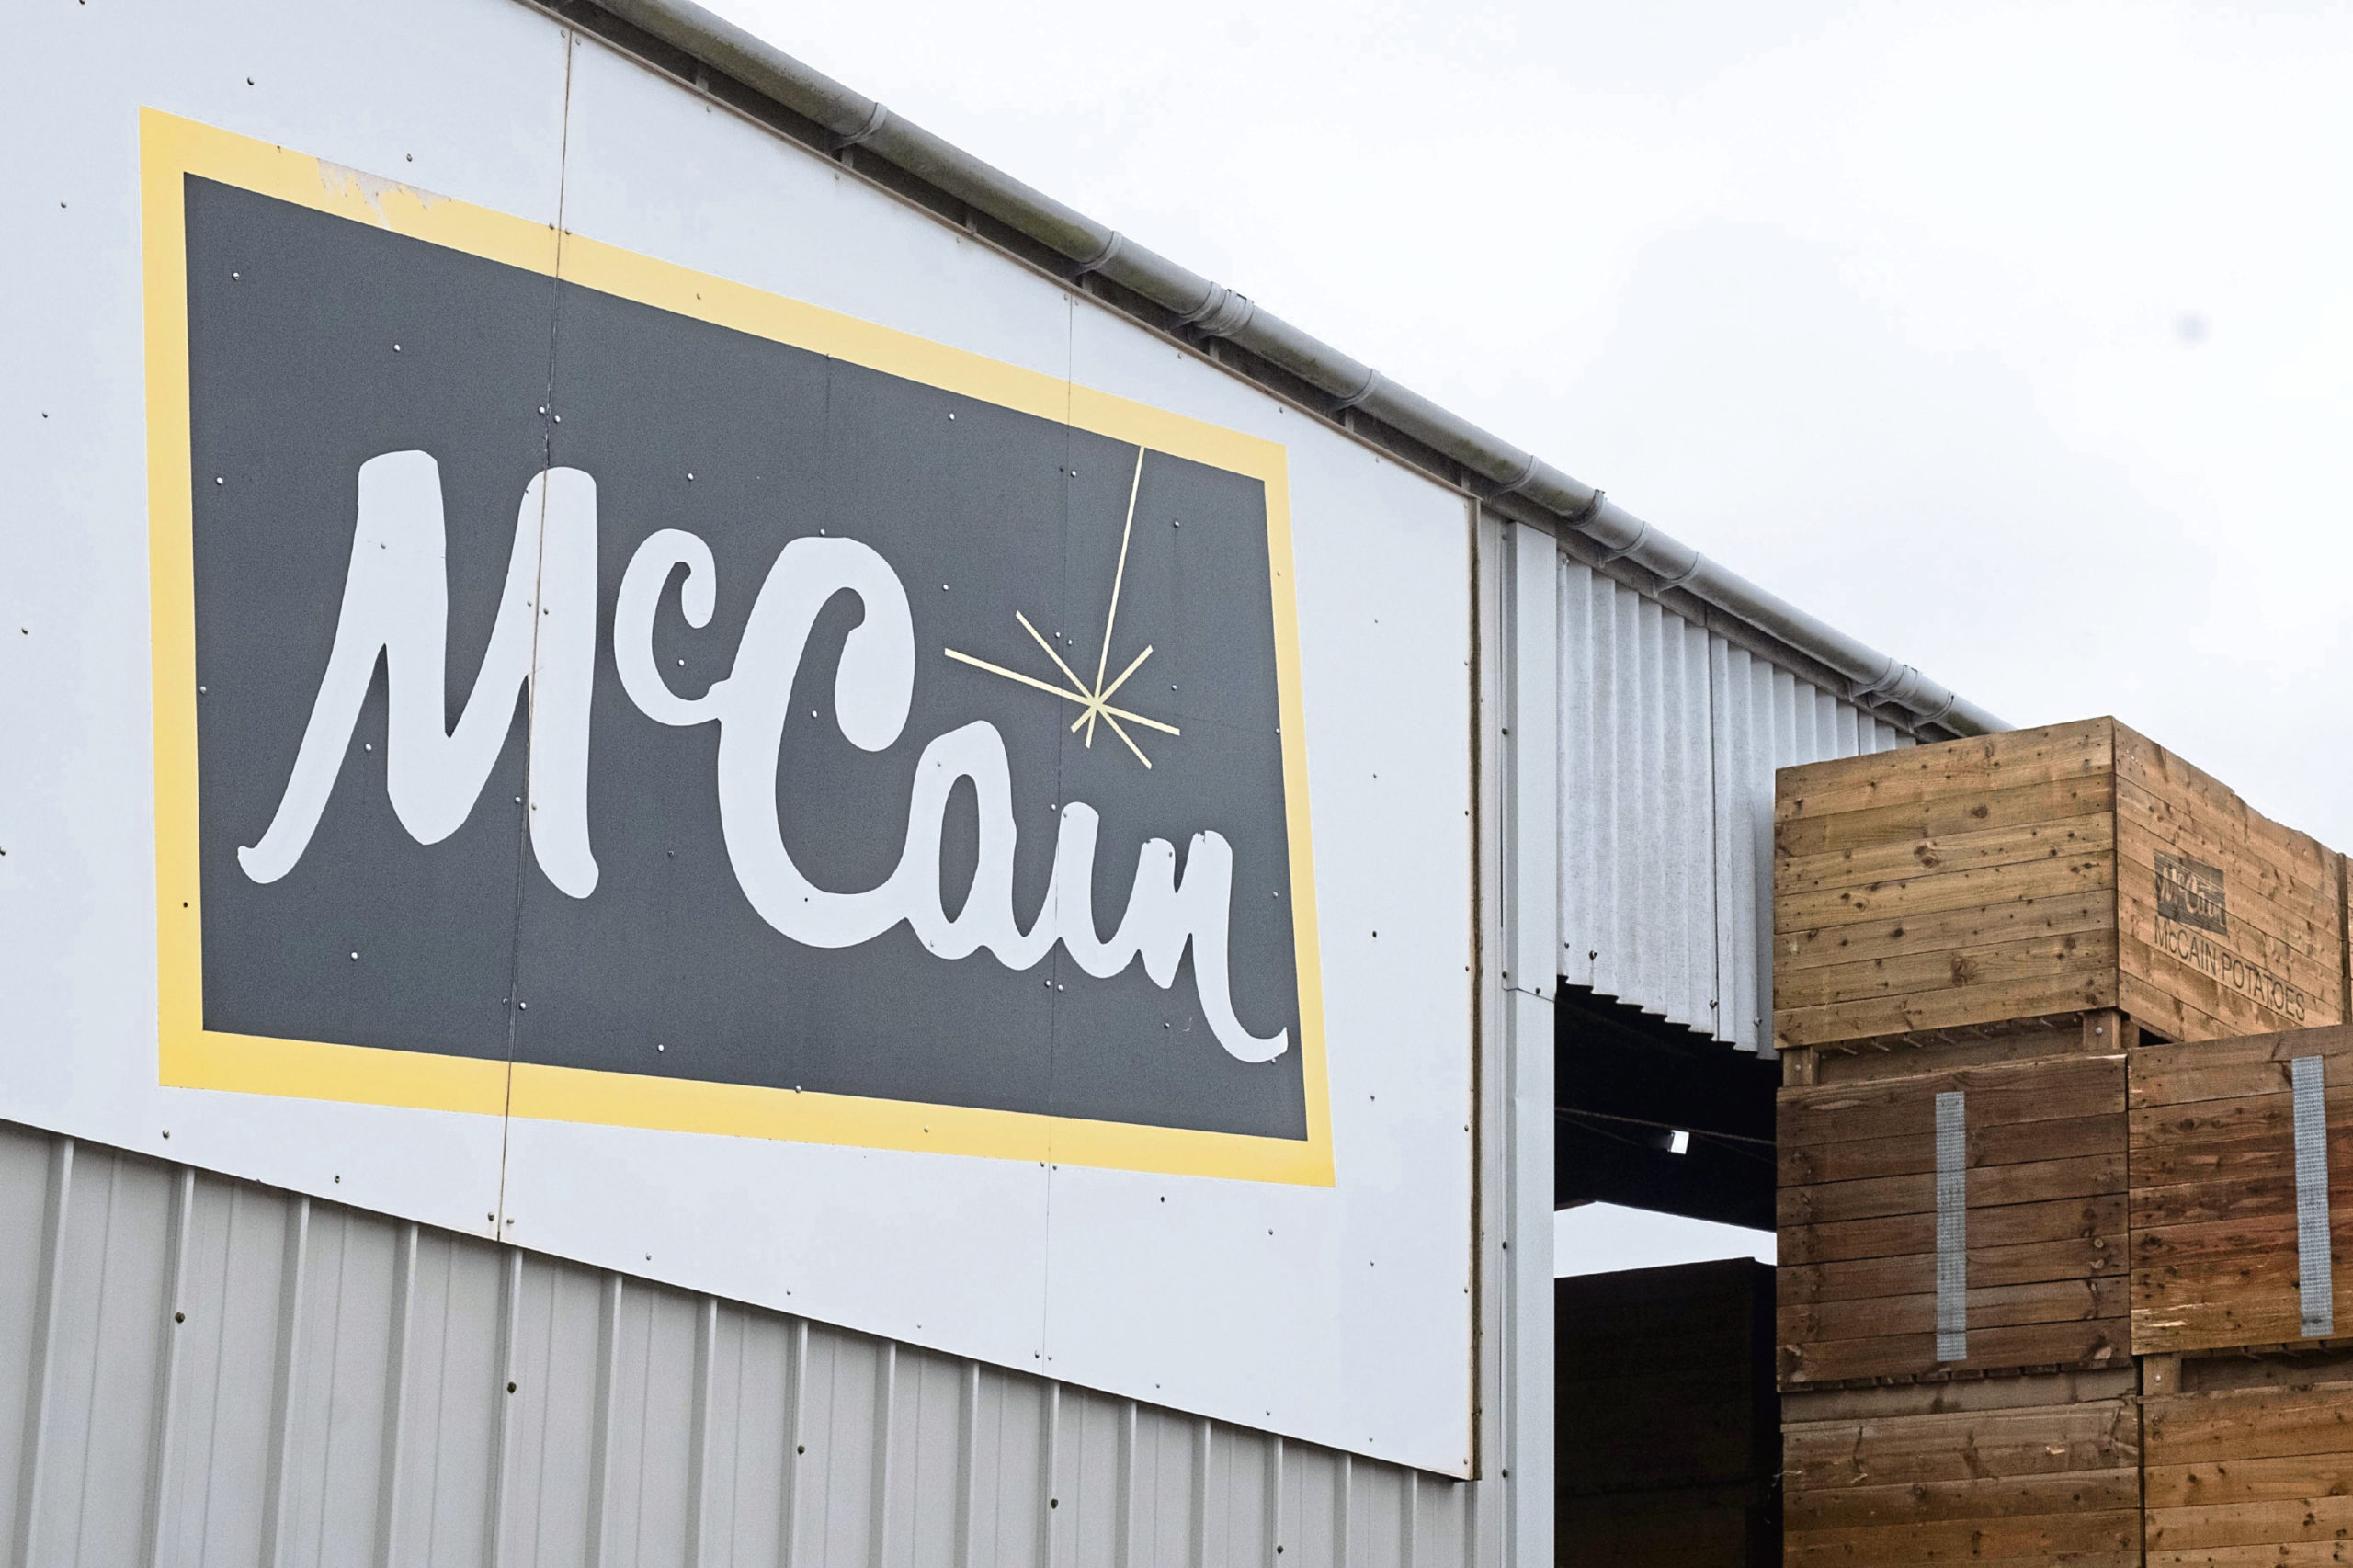 Chips manufacturer McCain says the investment will strengthen its partnership with farmers.